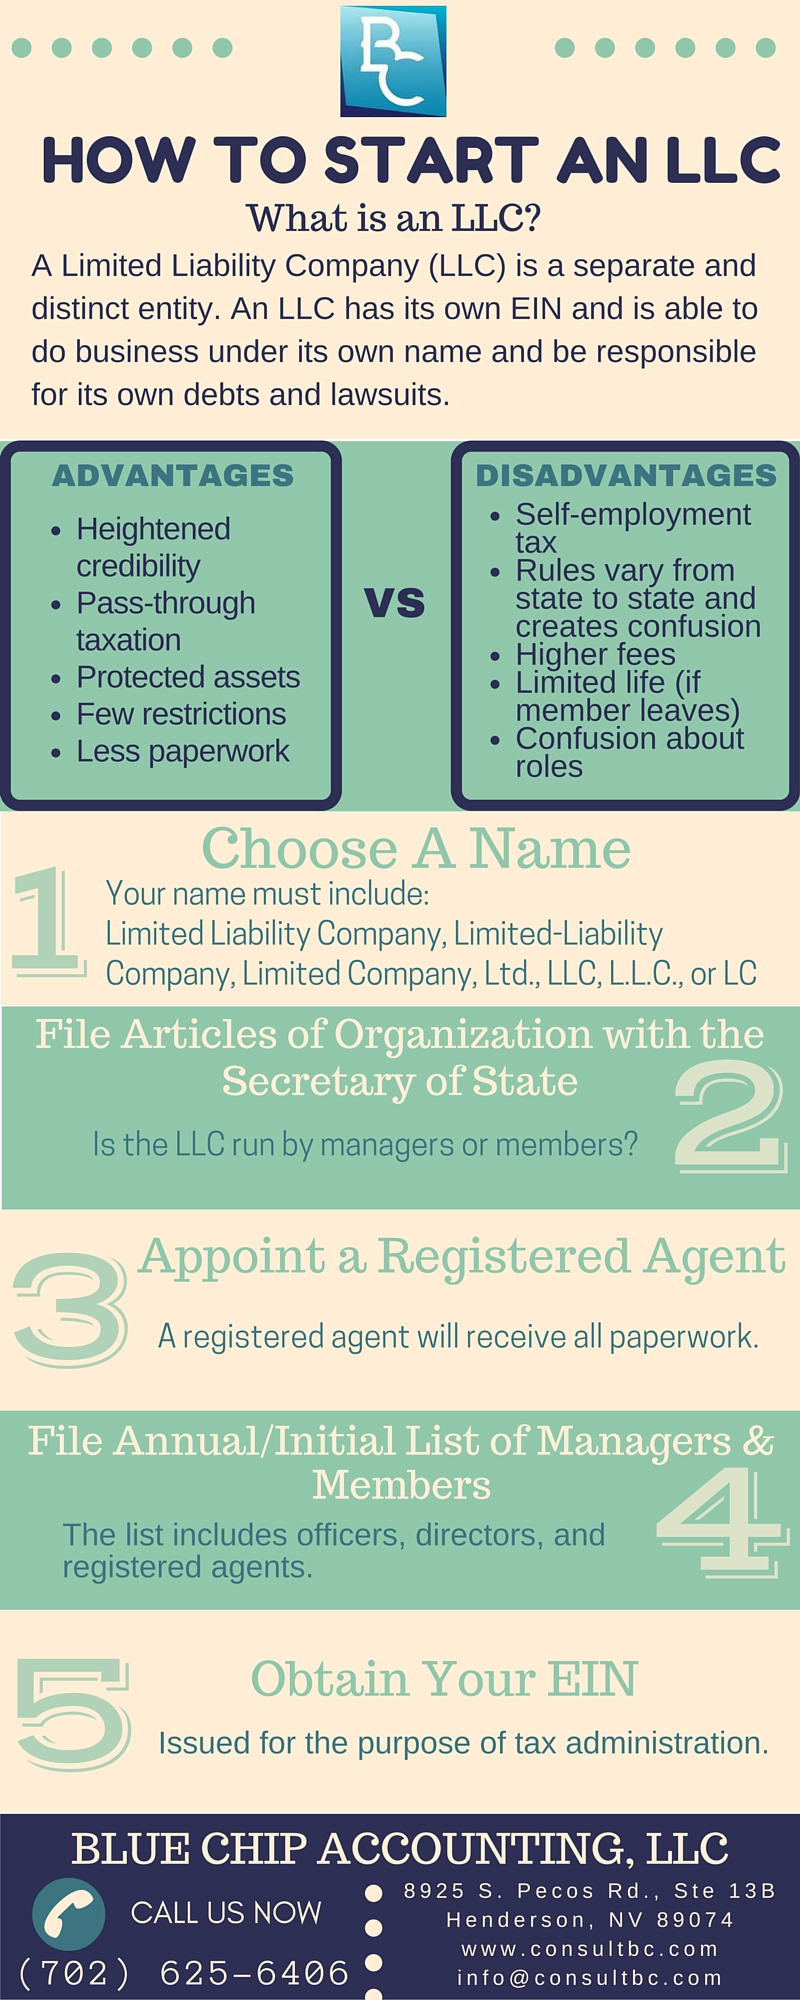 How to Start an LLC